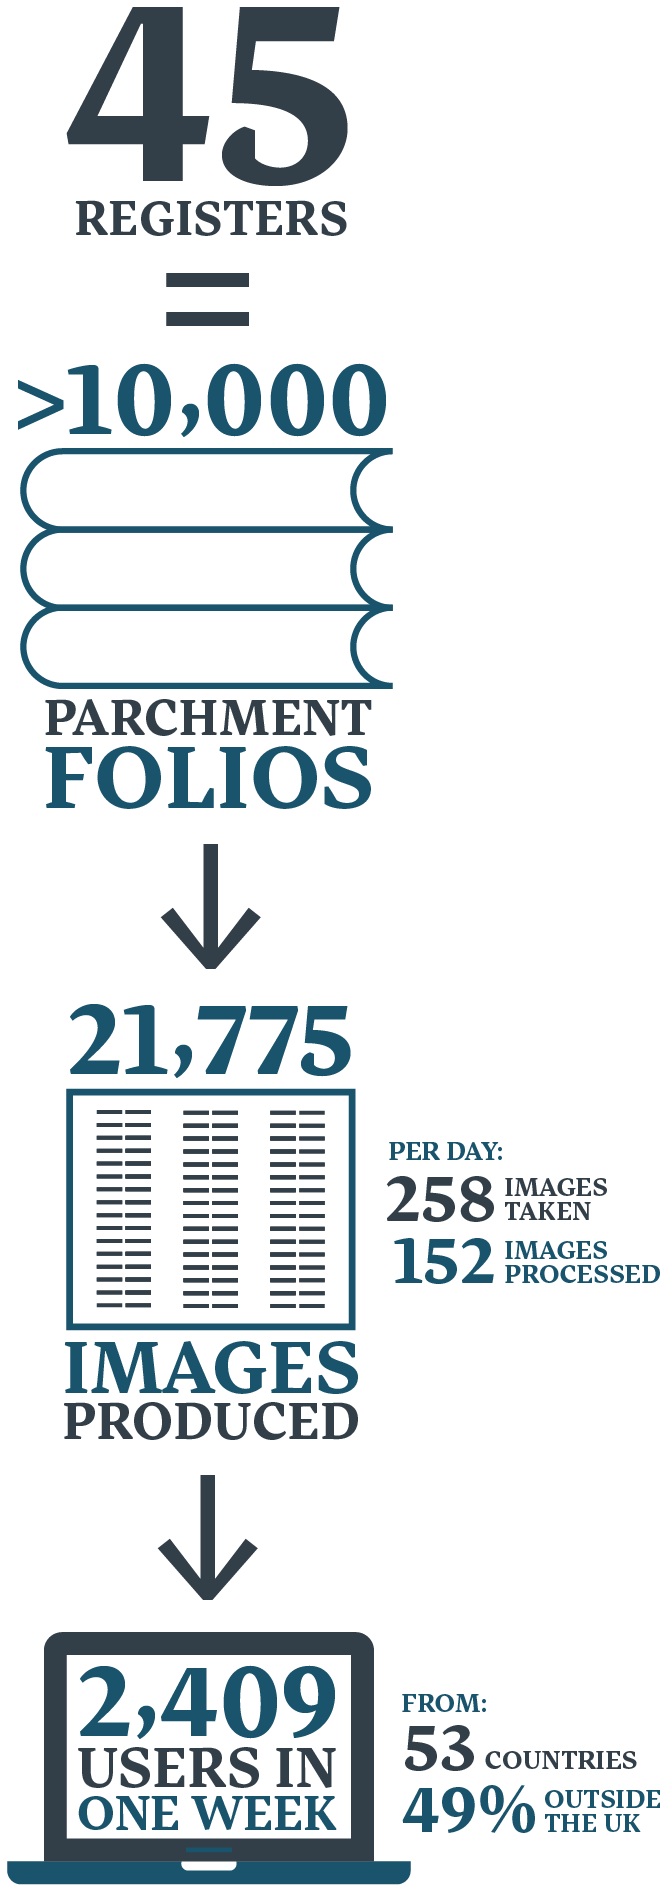 archbishops-registers-infographic-for-web